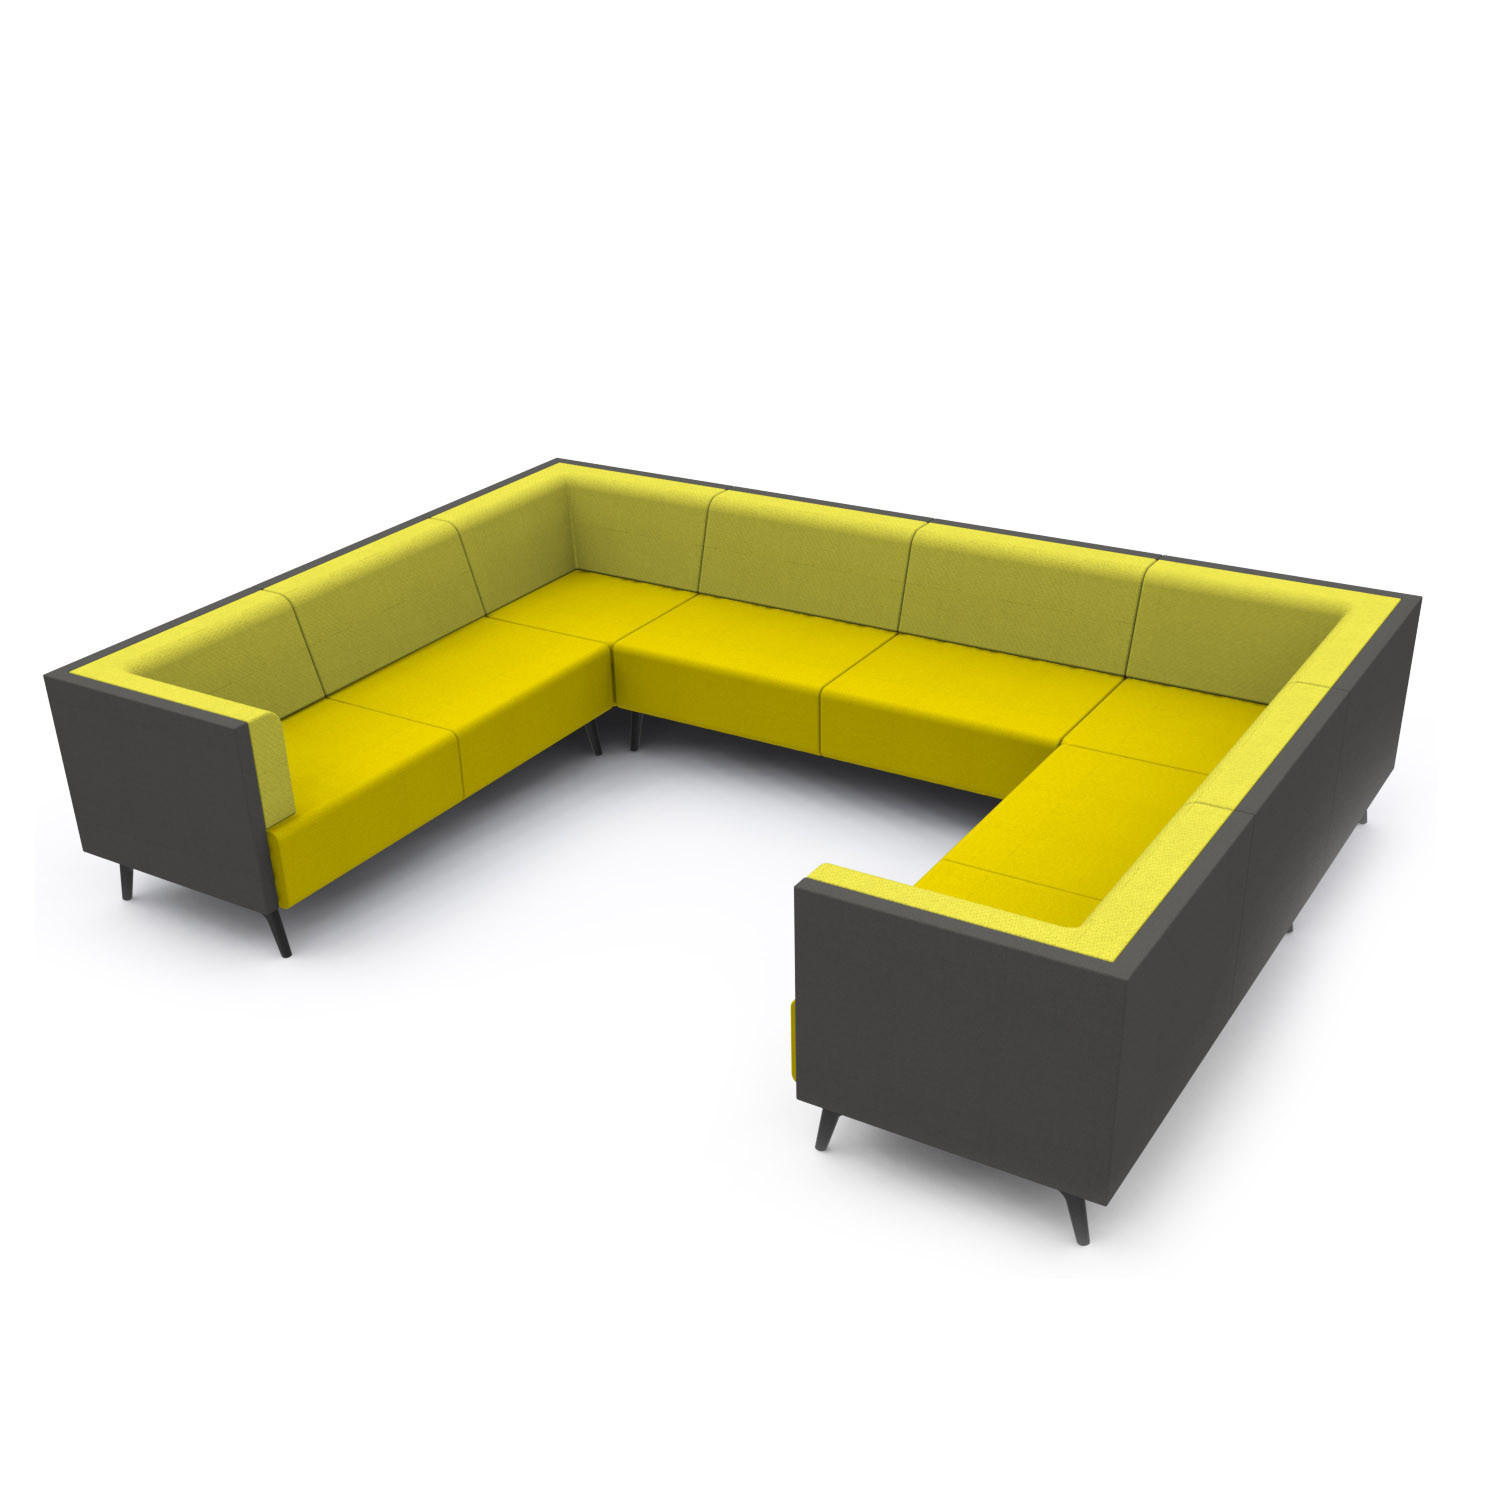 Tryst U-Shaped Sofa by Roger Webb Associates